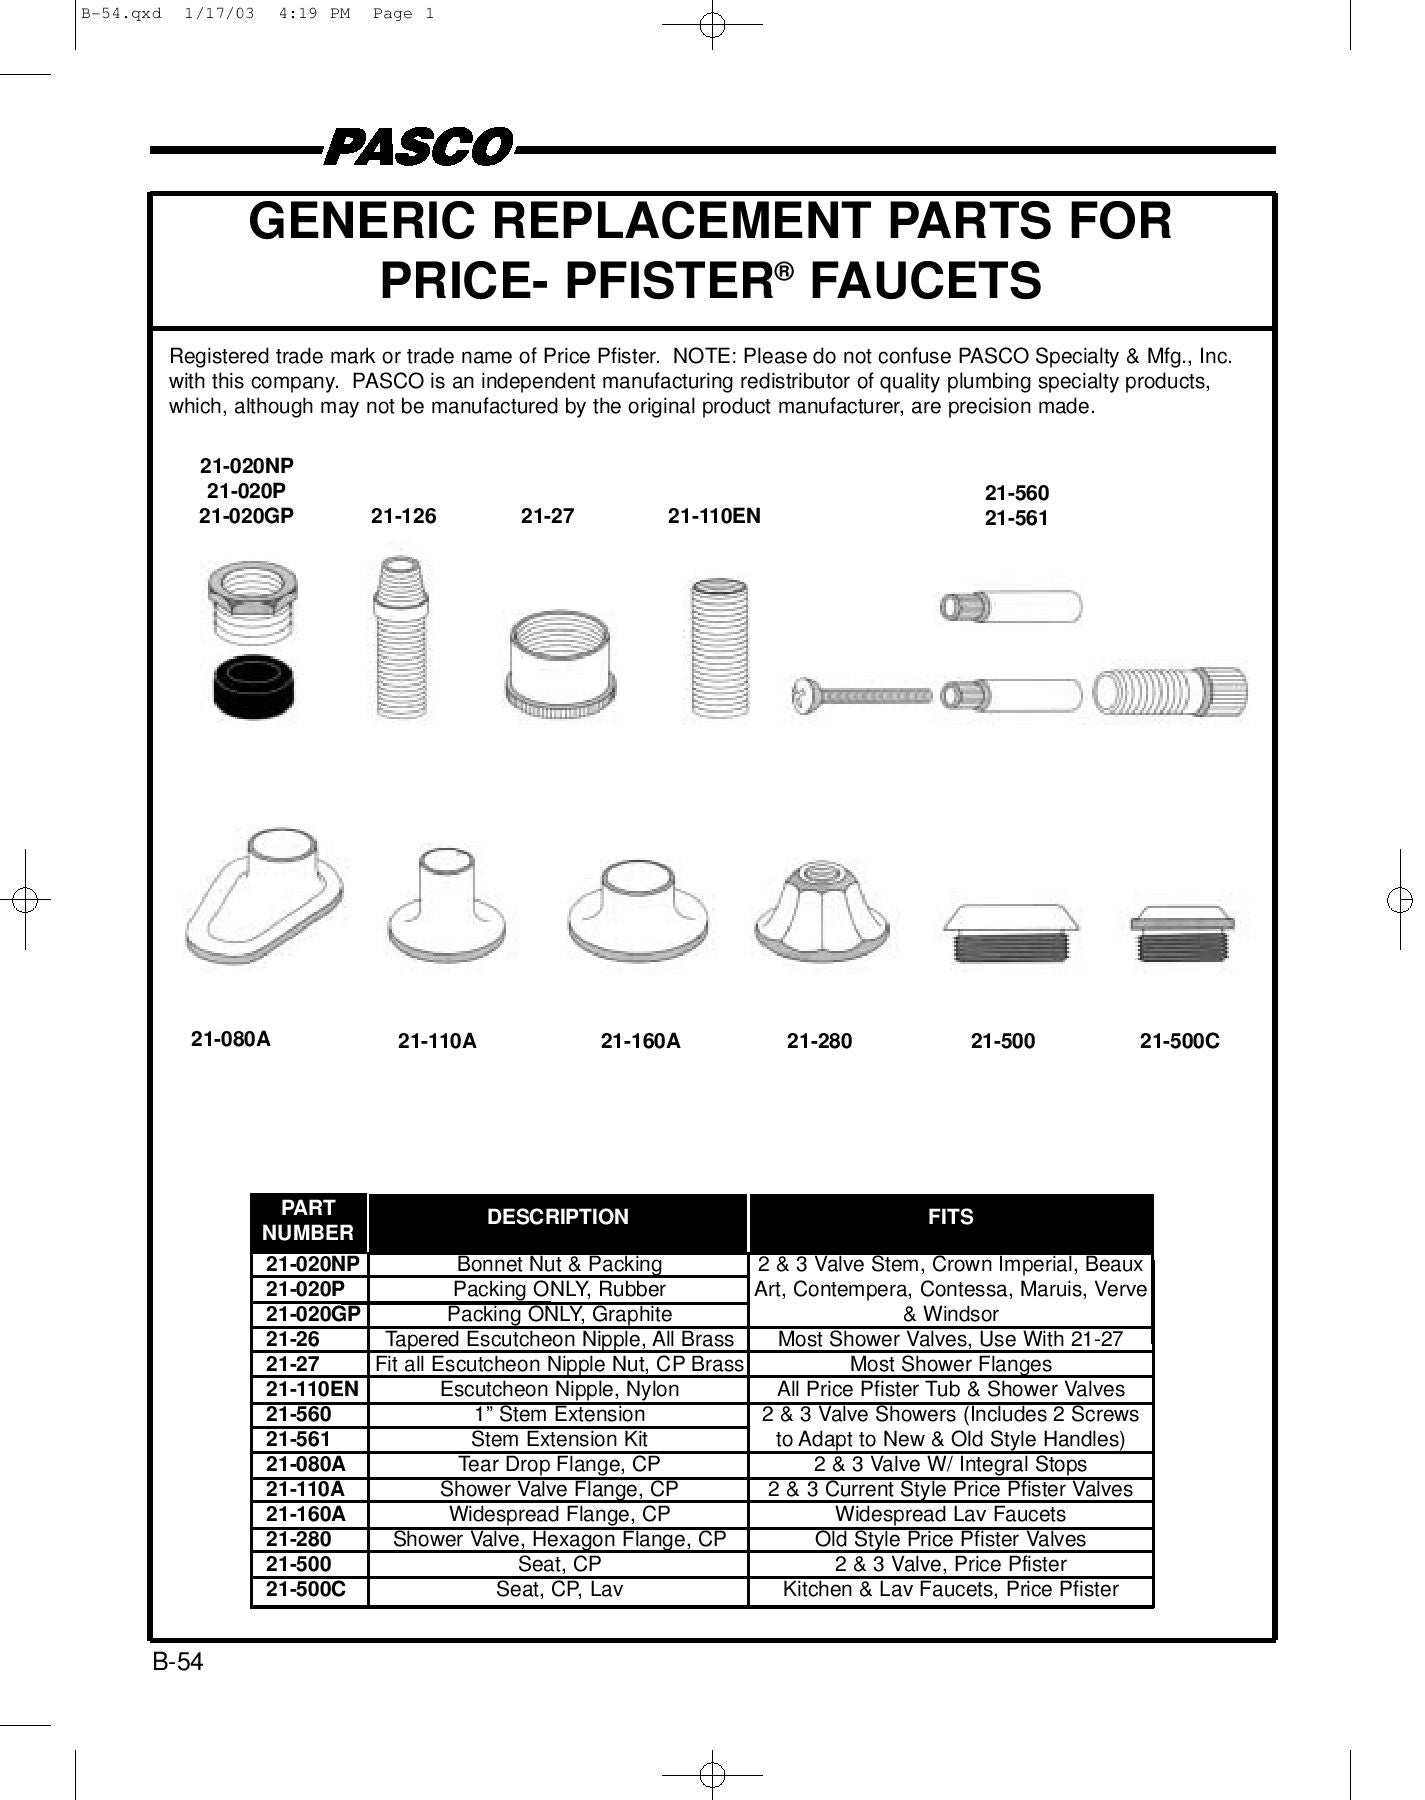 Issuu plumbing parts catalog by f w webb company